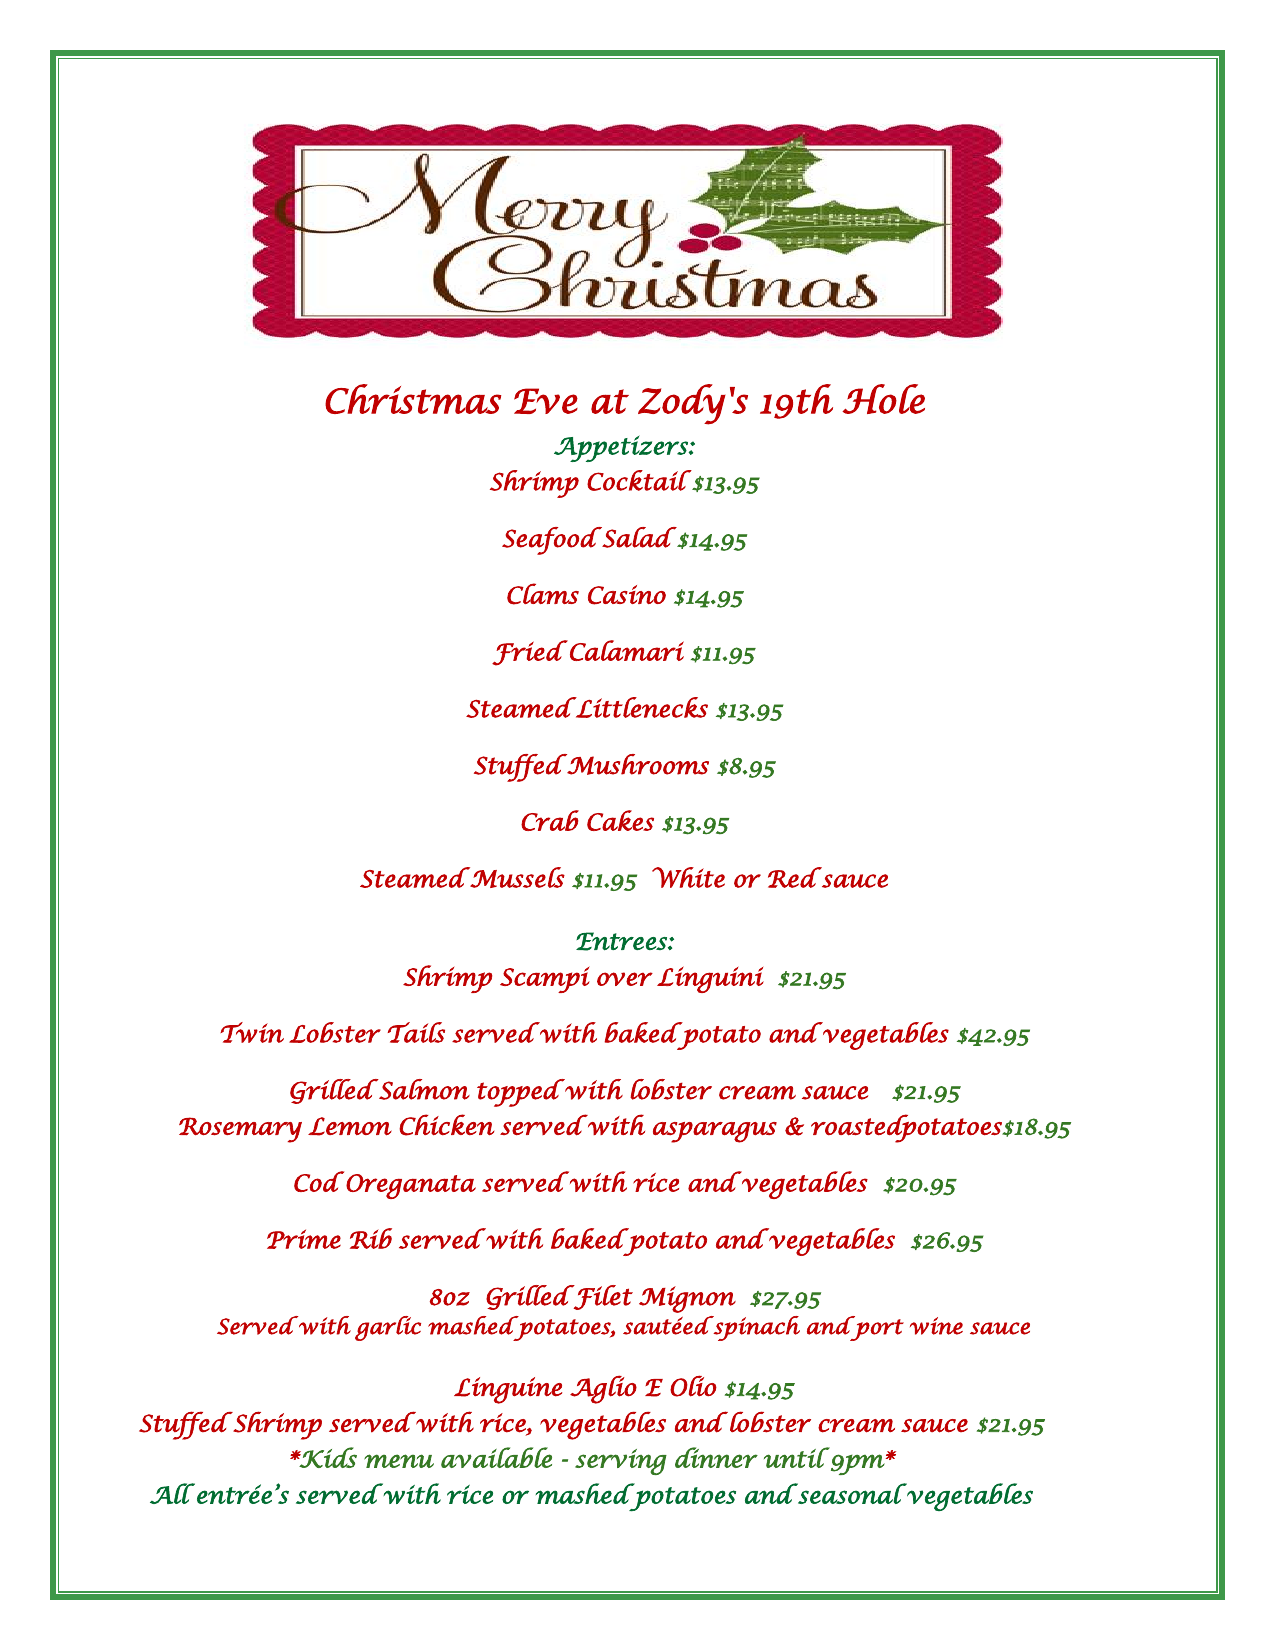 Christmas Eve at Zody's 19th Hole Appetizers: Shrimp Cocktail $13.95 Seafood Salad $14.95 Clams Casino $14.95 Fried Calamari $11.95 Steamed Littlenecks $13.95 Stuffed Mushrooms $8.95 Crab Cakes $13.95 Steamed Mussels $11.95 White or Red sauce  Entrees: Shrimp Scampi over Linguini $21.95 Twin Lobster Tails served with baked potato and vegetables $42.95 Grilled Salmon topped with lobster cream sauce $21.95 Rosemary Lemon Chicken served with asparagus & roastedpotatoes$18.95 Cod Oreganata served with rice and vegetables $20.95 Prime Rib served with baked potato and vegetables $26.95 8oz Grilled Filet Mignon $27.95 Served with garlic mashed potatoes, sautéed spinach and port wine sauce  Linguine Aglio E Olio $14.95 Stuffed Shrimp served with rice, vegetables and lobster cream sauce $21.95 *Kids menu available - serving dinner until 9pm* All entrée's served with rice or mashed potatoes and seasonal vegetables